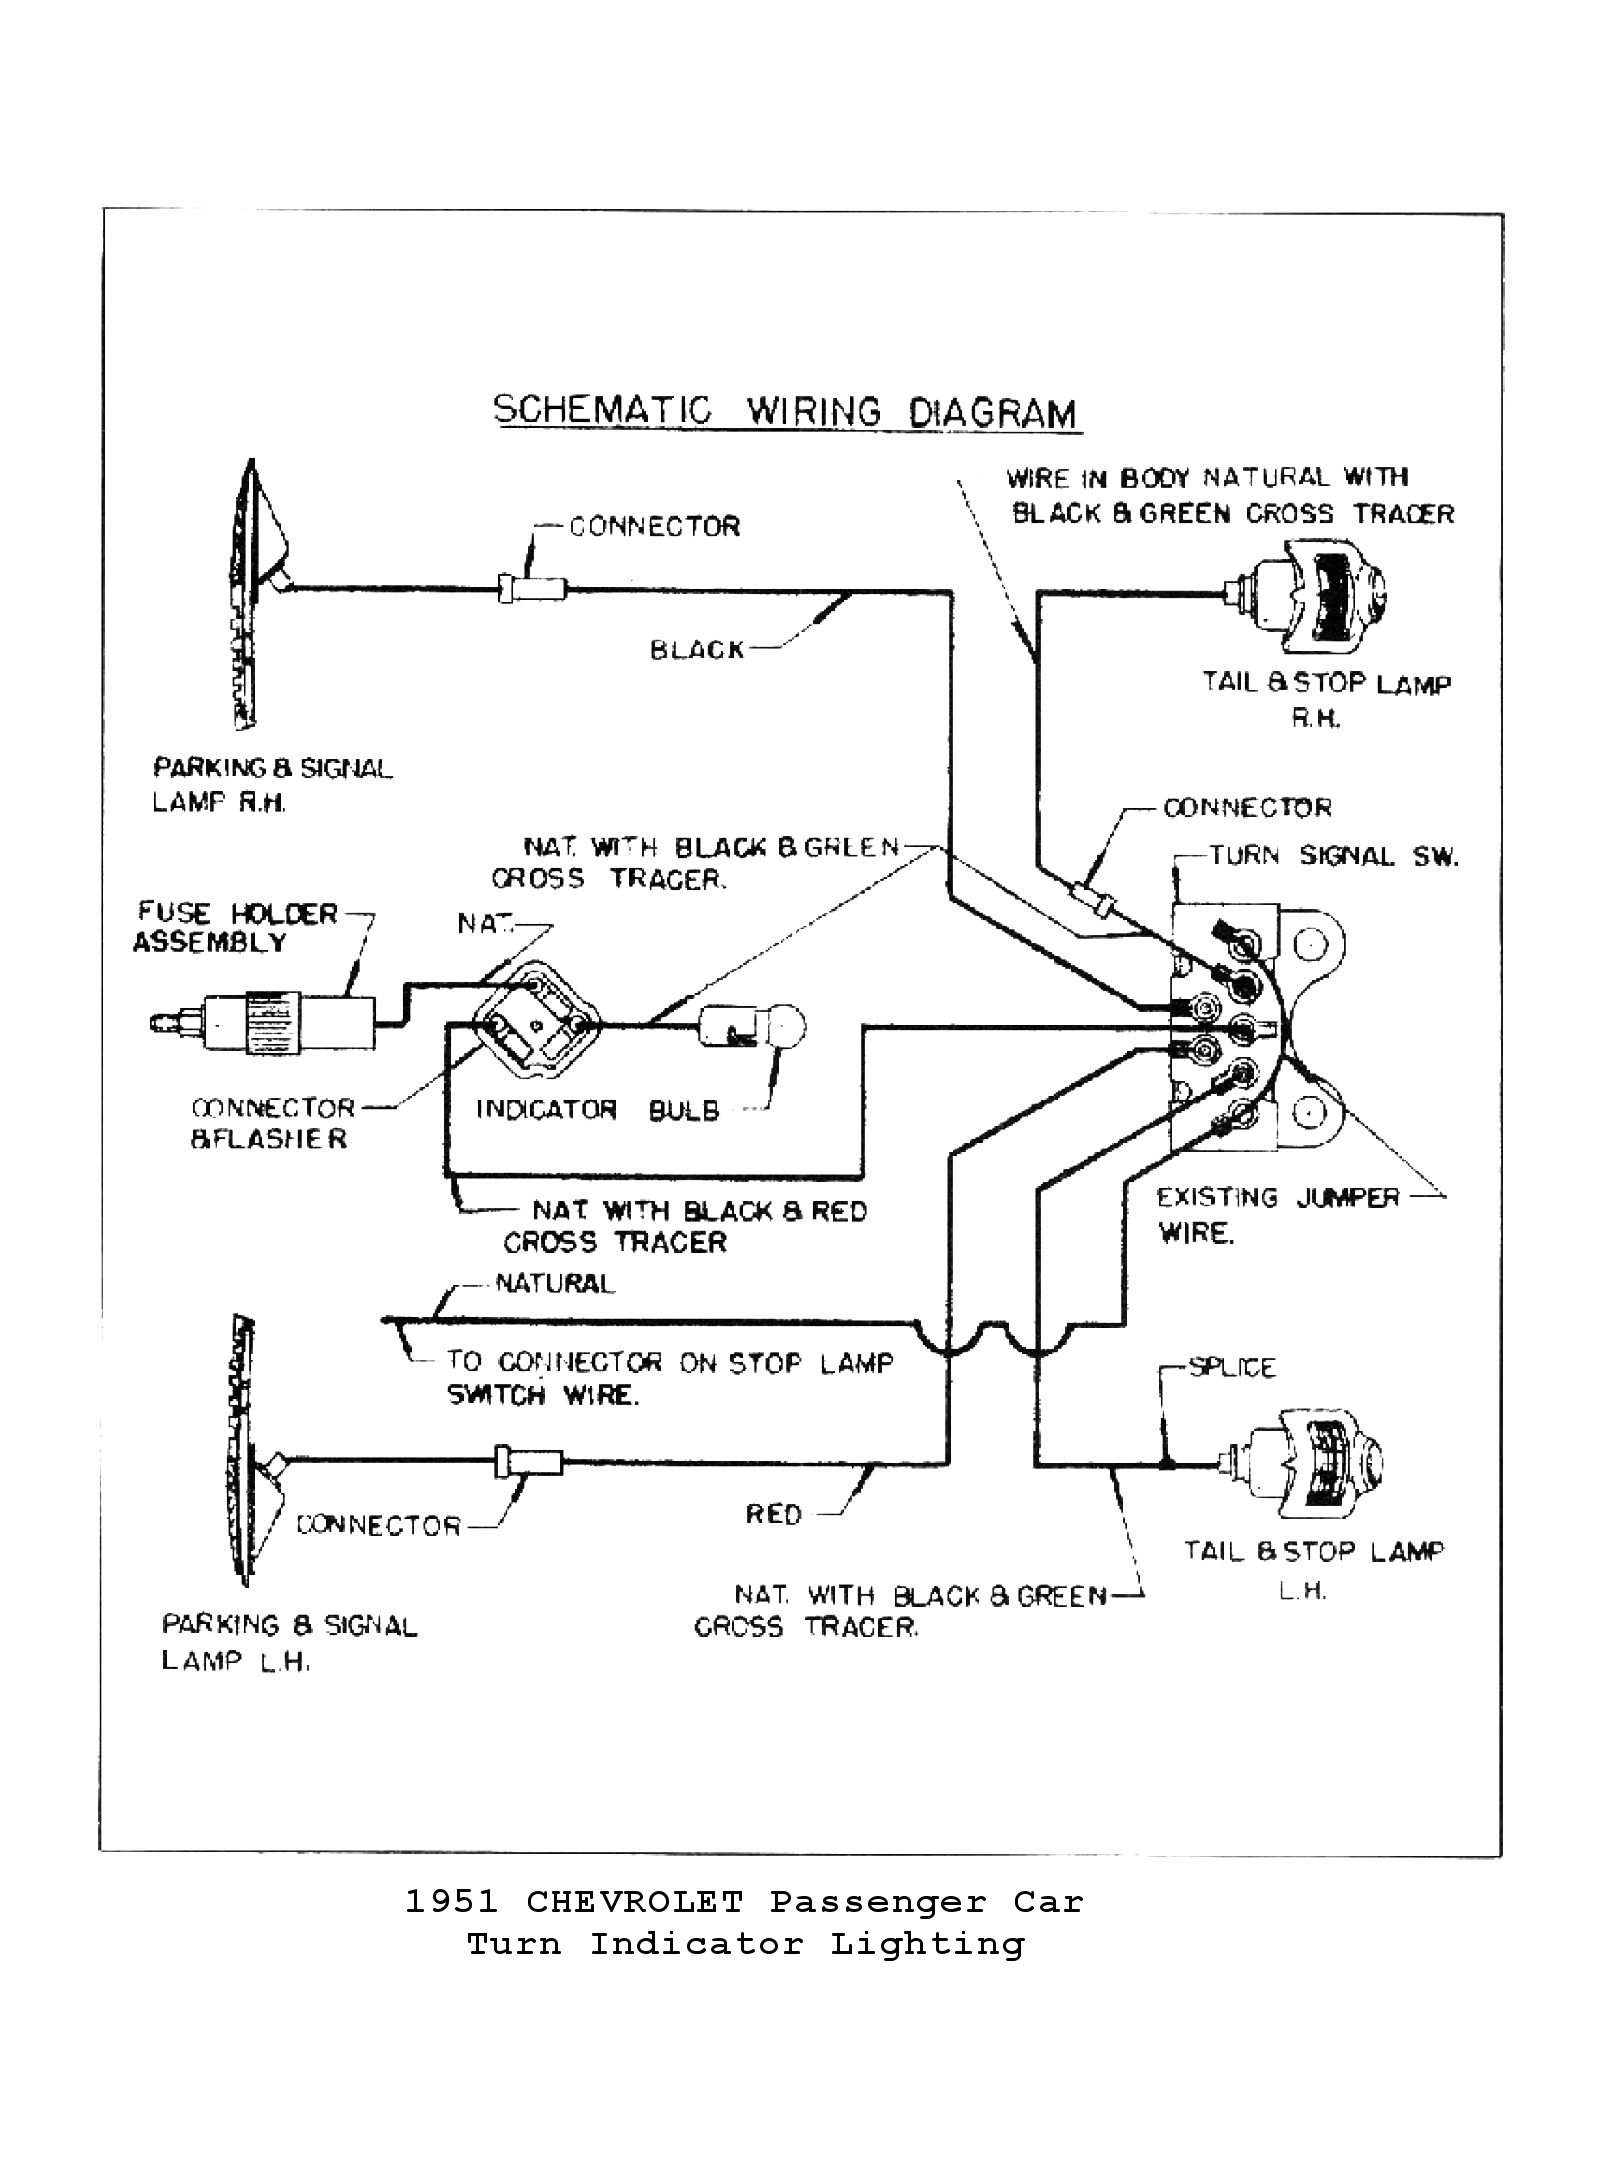 chevy wiring diagrams rh chevy oldcarmanualproject com Automotive Wiring System Diagram Automotive Wiring System Diagram